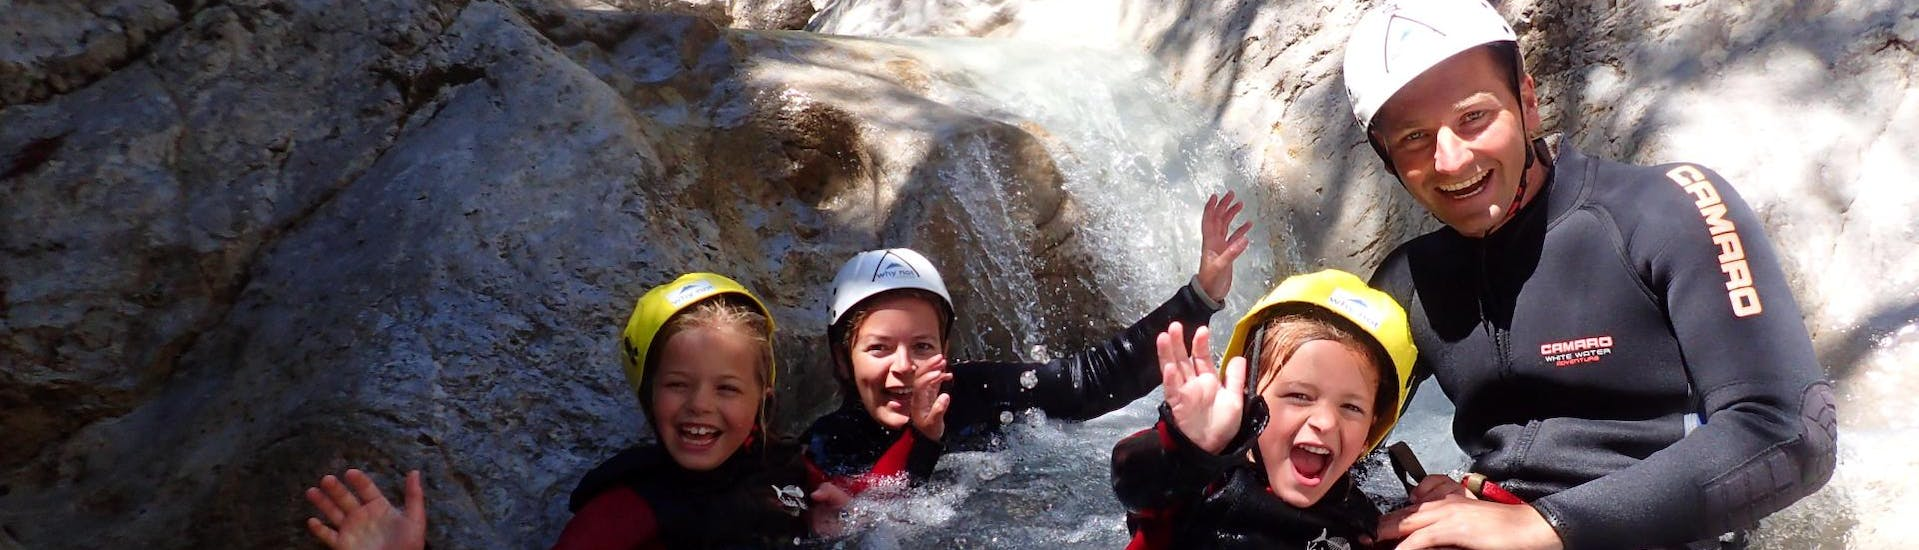 """During the Canyoning """"Family Tour"""" in Rosengartenschlucht, kids are having fun in the natural pool with a certified canyoning guide from WhyNot Adventures."""